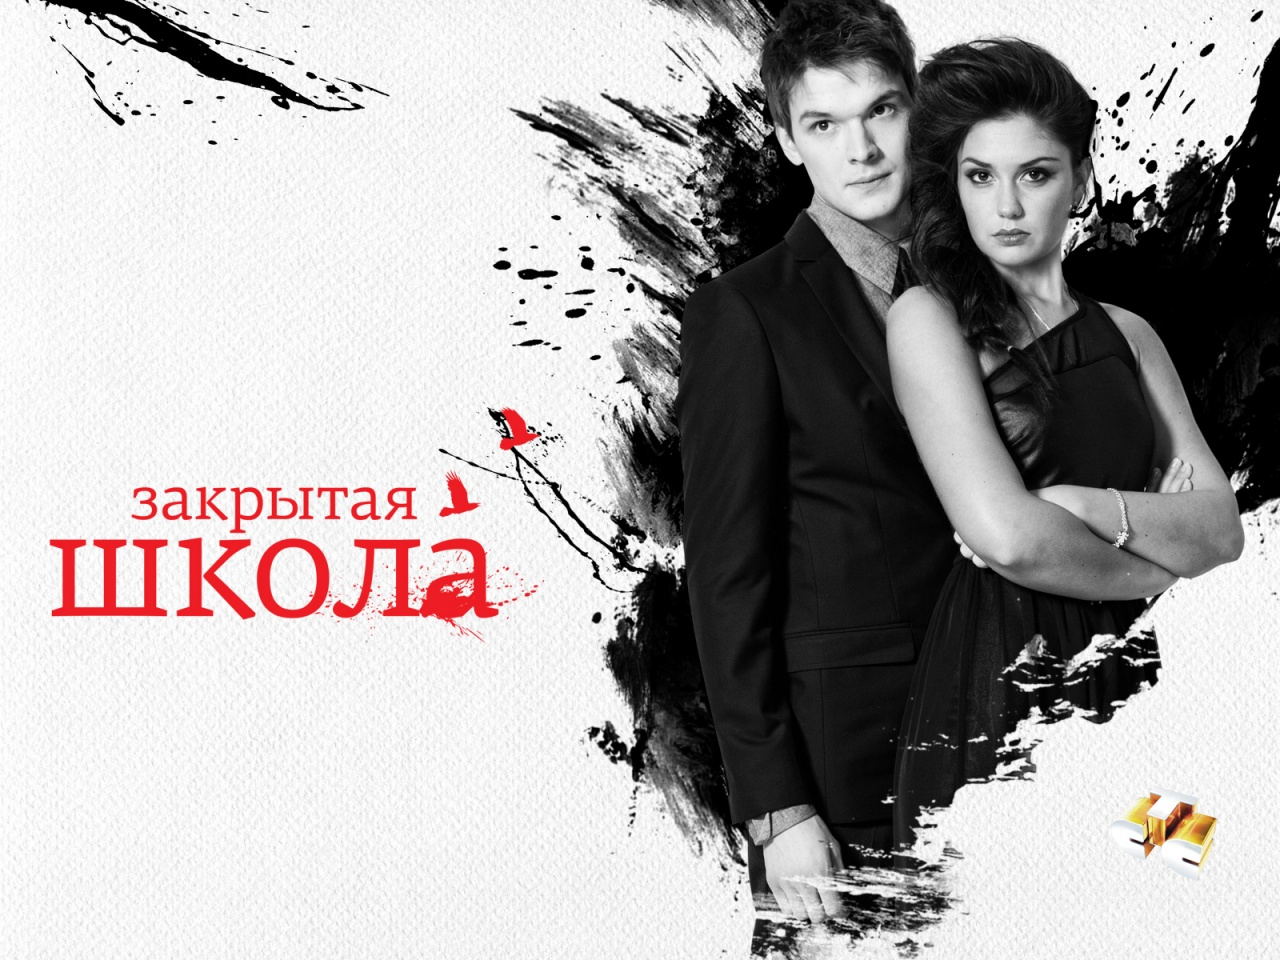 Обои: Закрытая школа: www.kinopoisk.ru/picture/1874792/w_size/1280